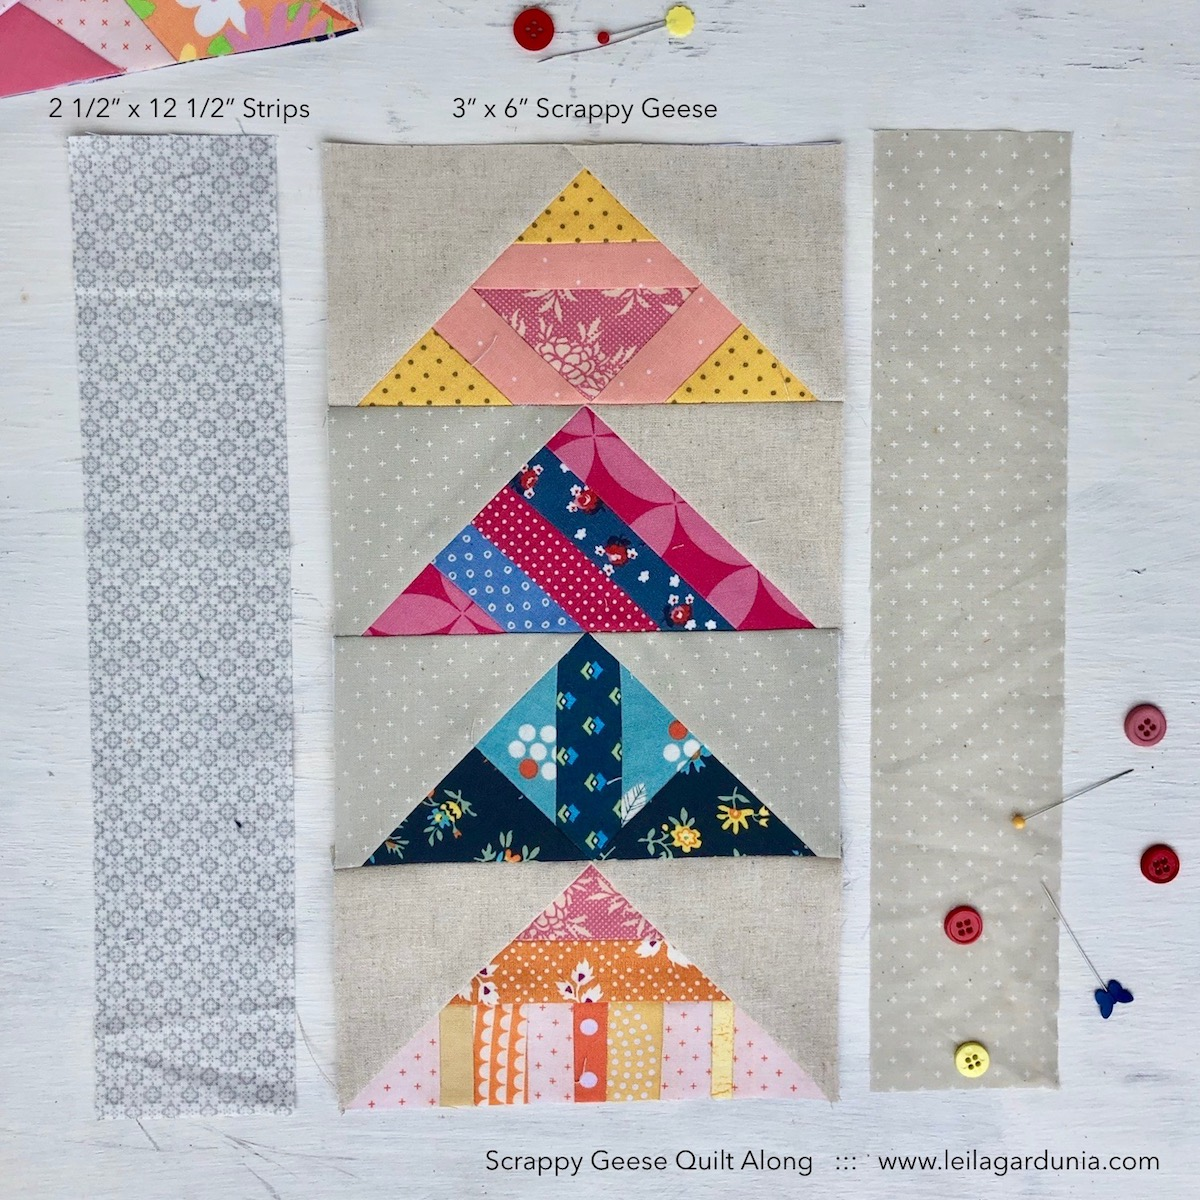 3 x 6 scrappy geese quilt along instructions.jpg